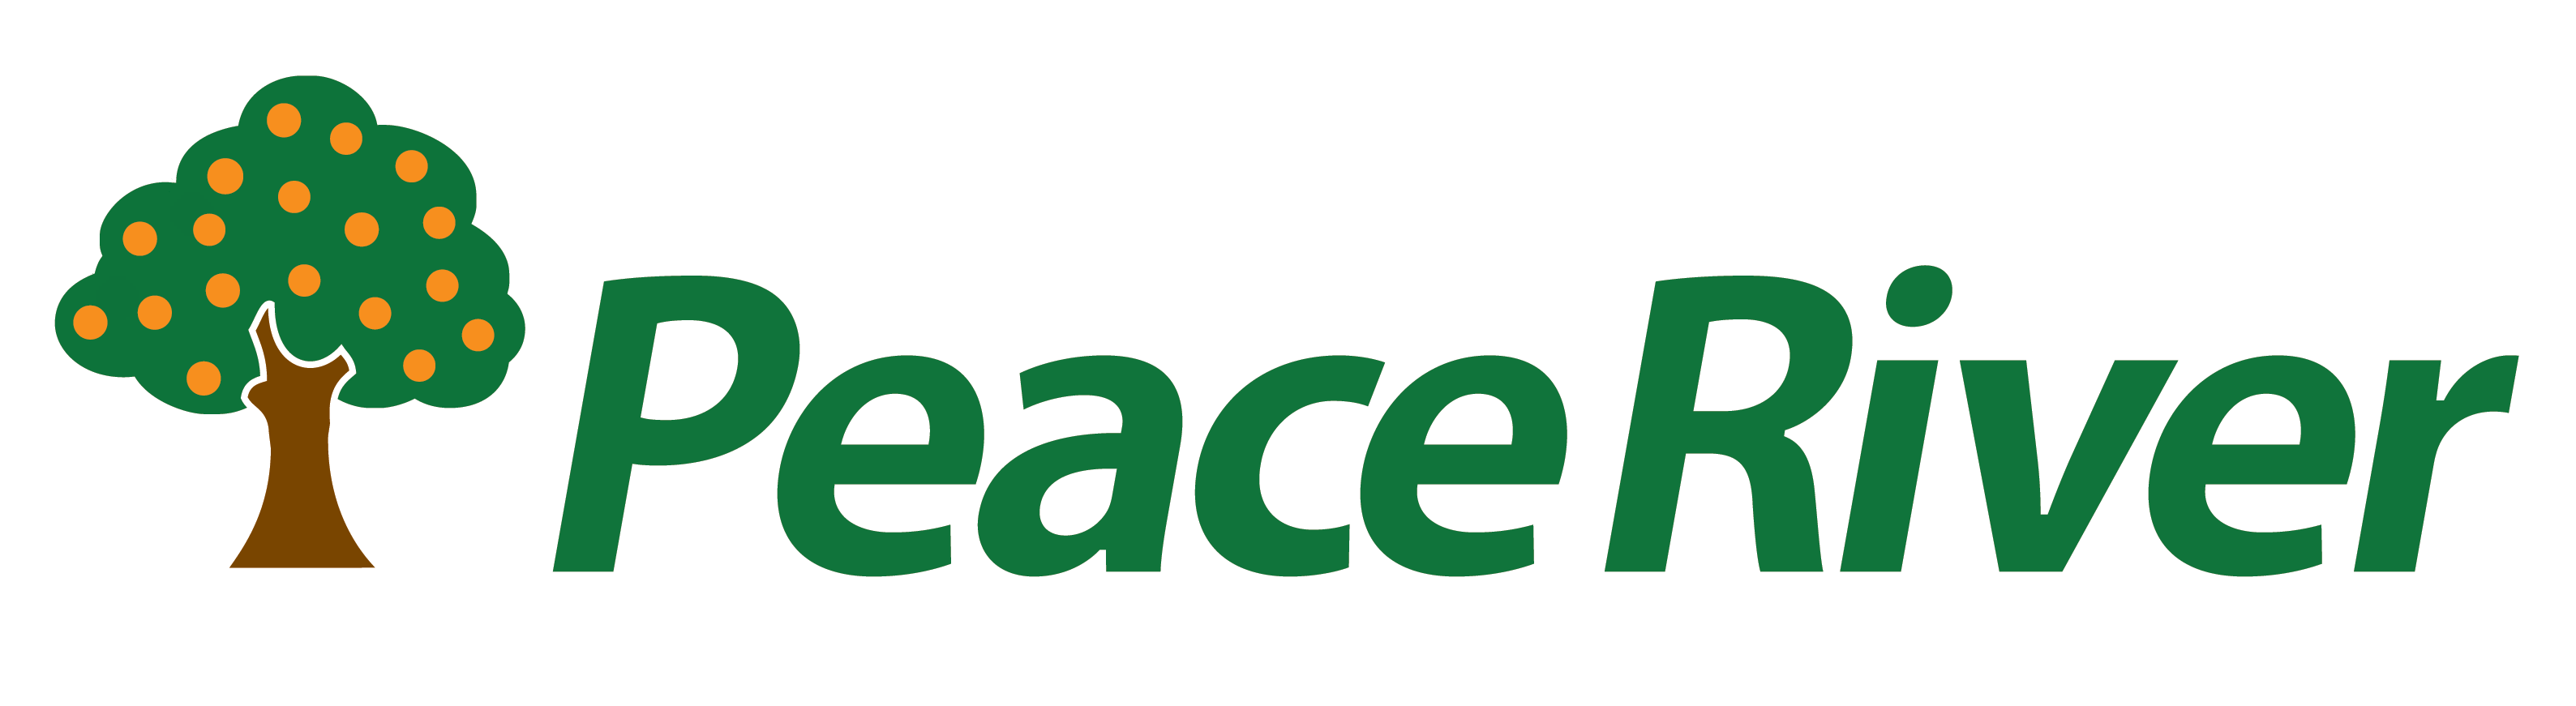 Peace River Packing Company